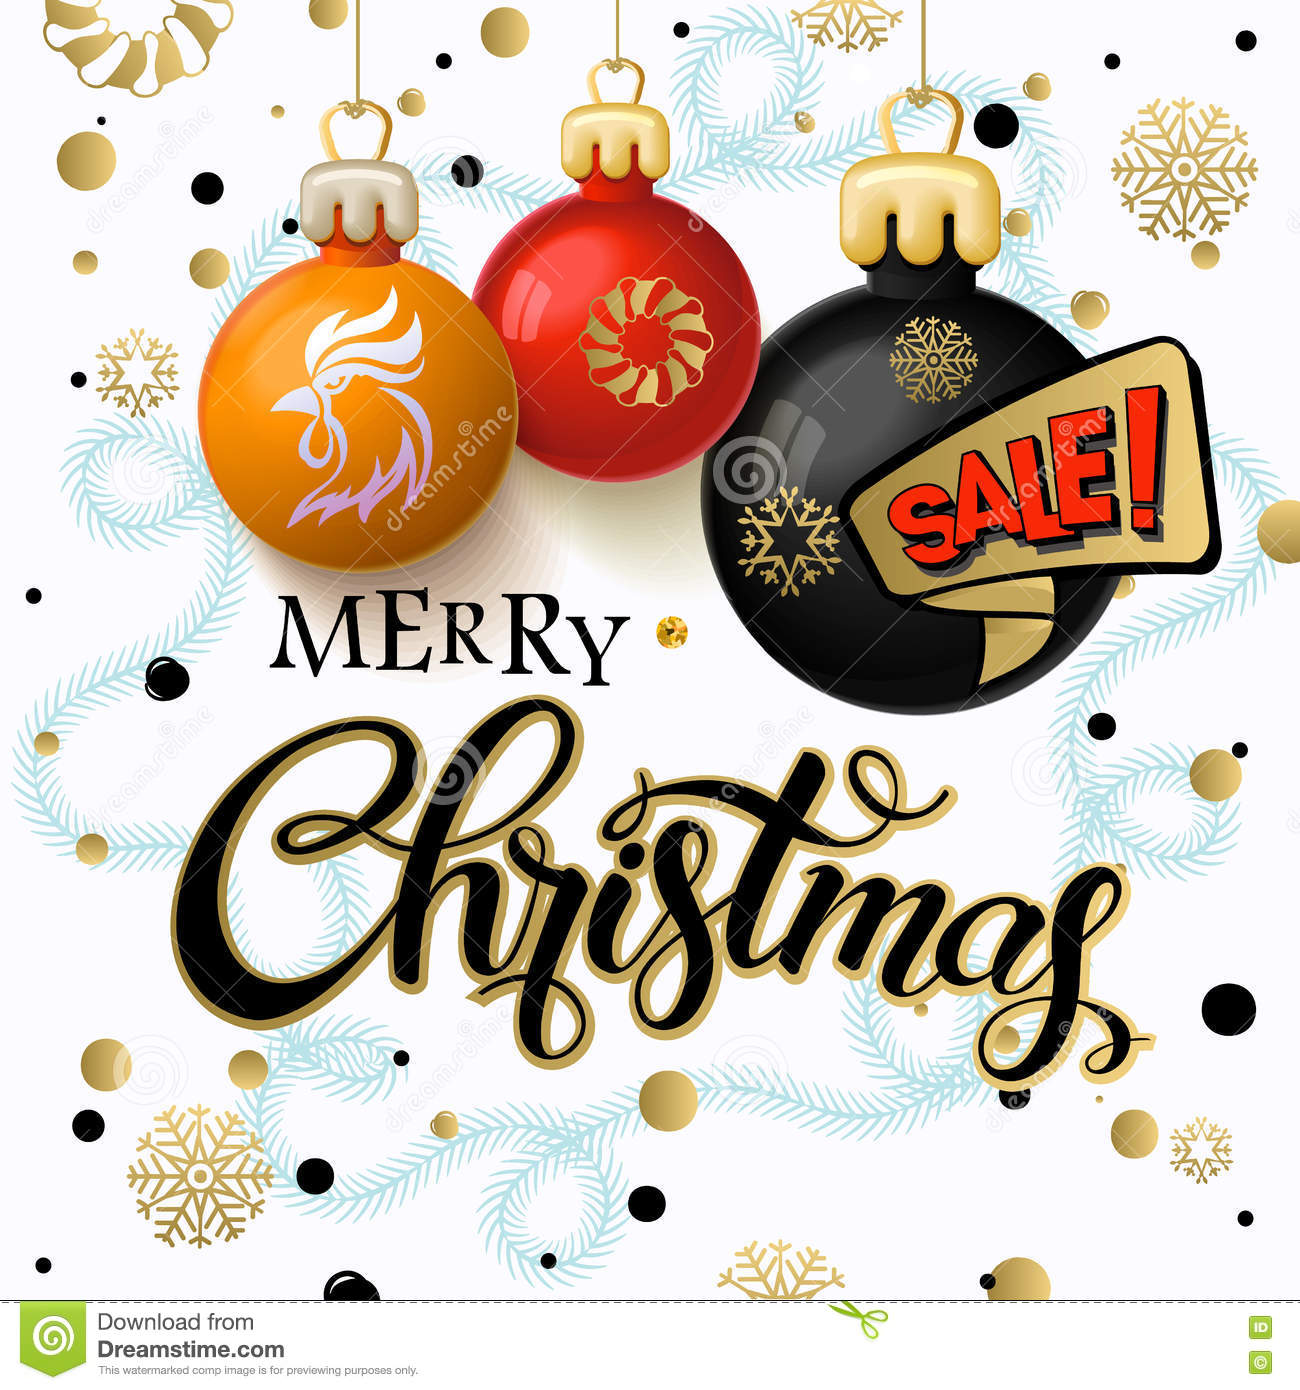 0d0c5c7e8096 Merry Christmas 2017 sale decoration poster card and Happy New year  background